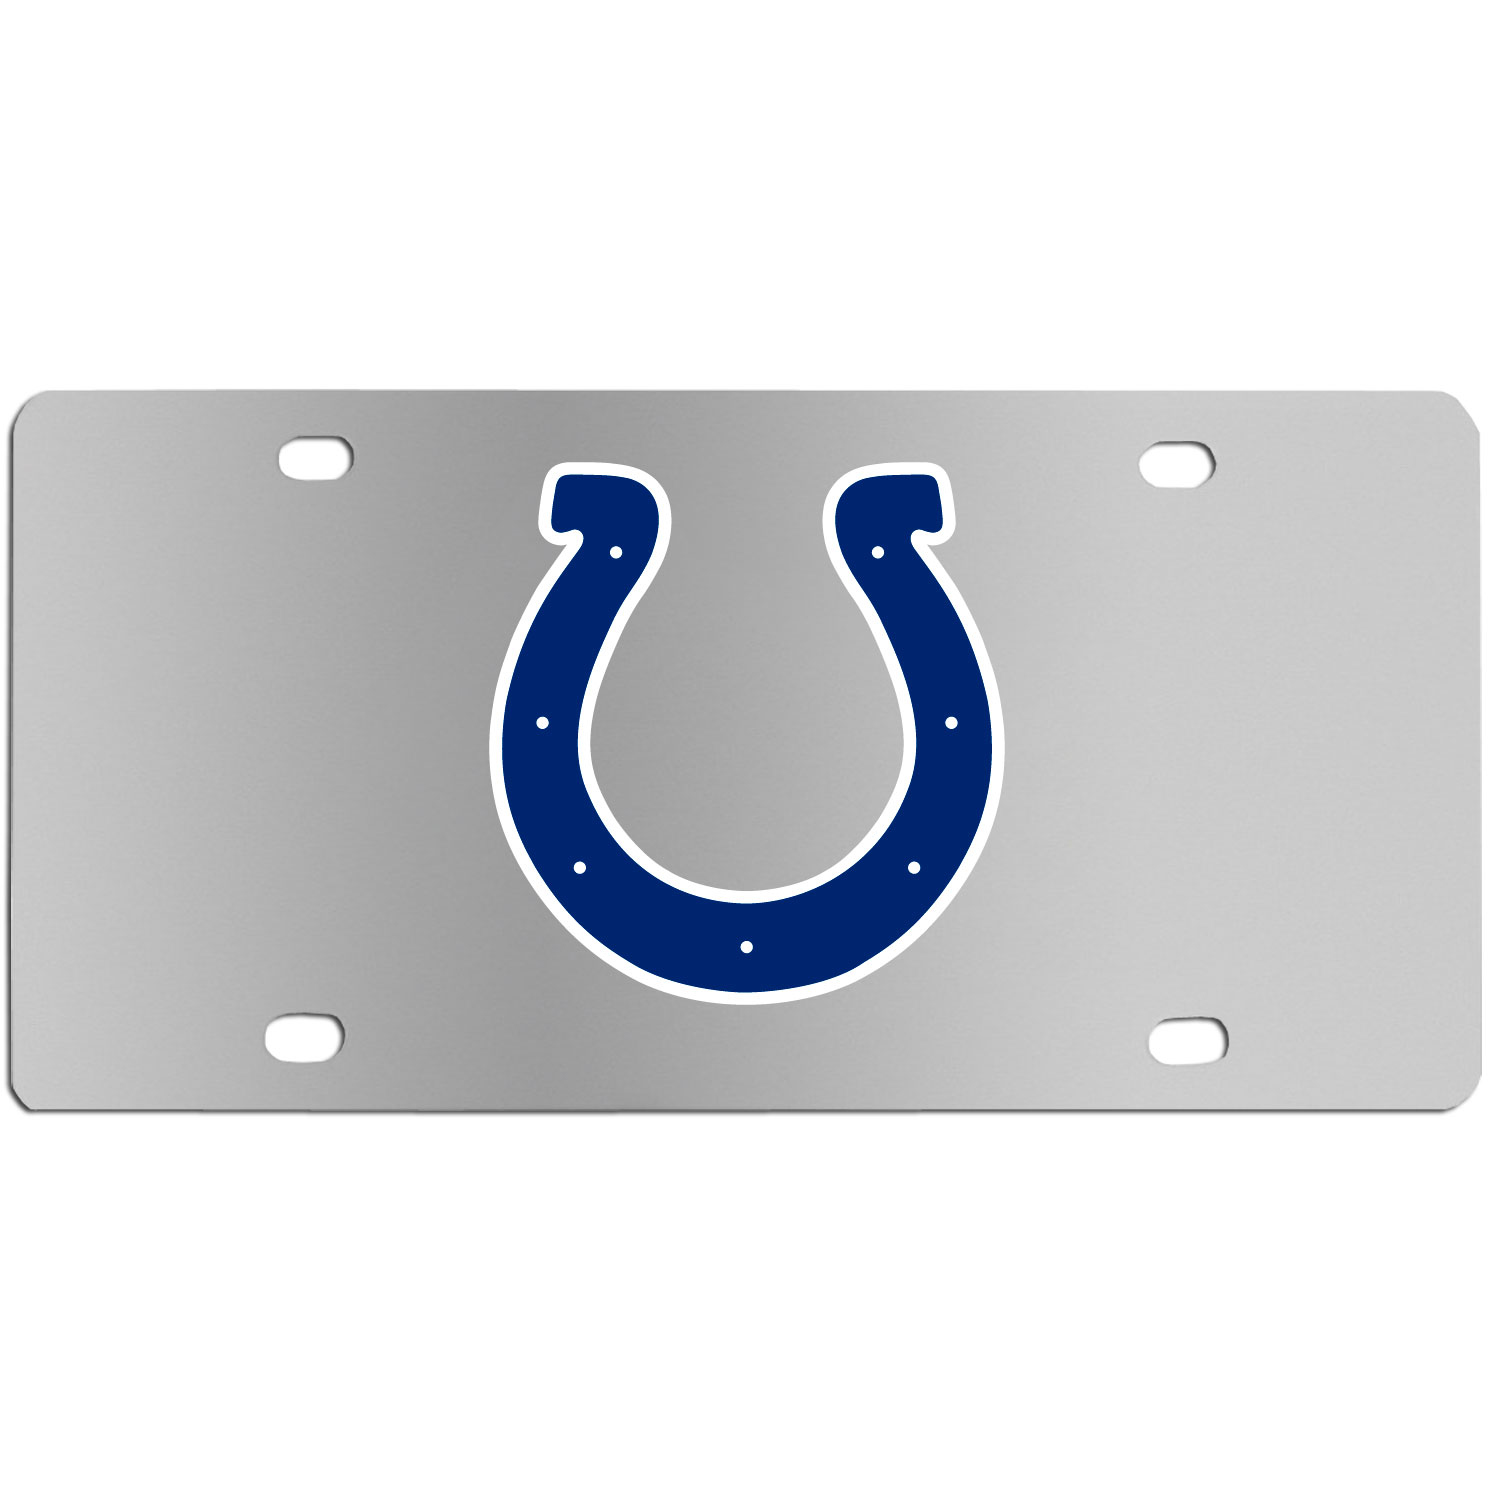 Indianapolis Colts Steel License Plate Wall Plaque - This high-quality stainless steel license plate features a detailed team logo on a the polished surface. The attractive plate is perfect for wall mounting in your home or office to become the perfect die-hard Indianapolis Colts fan decor.